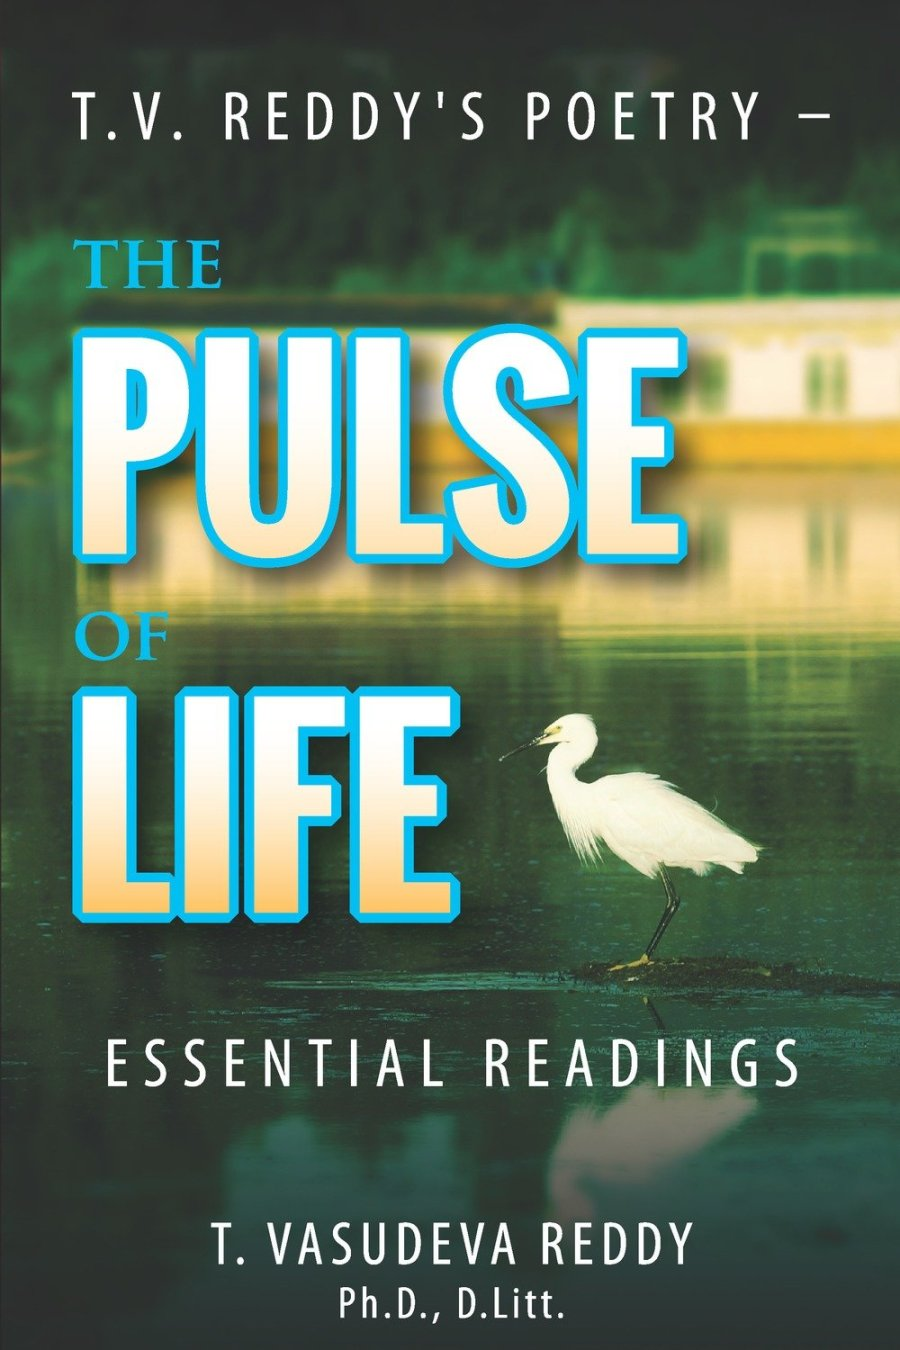 T.V. Reddy's Poetry - The Pulse of Life: Essential Readings